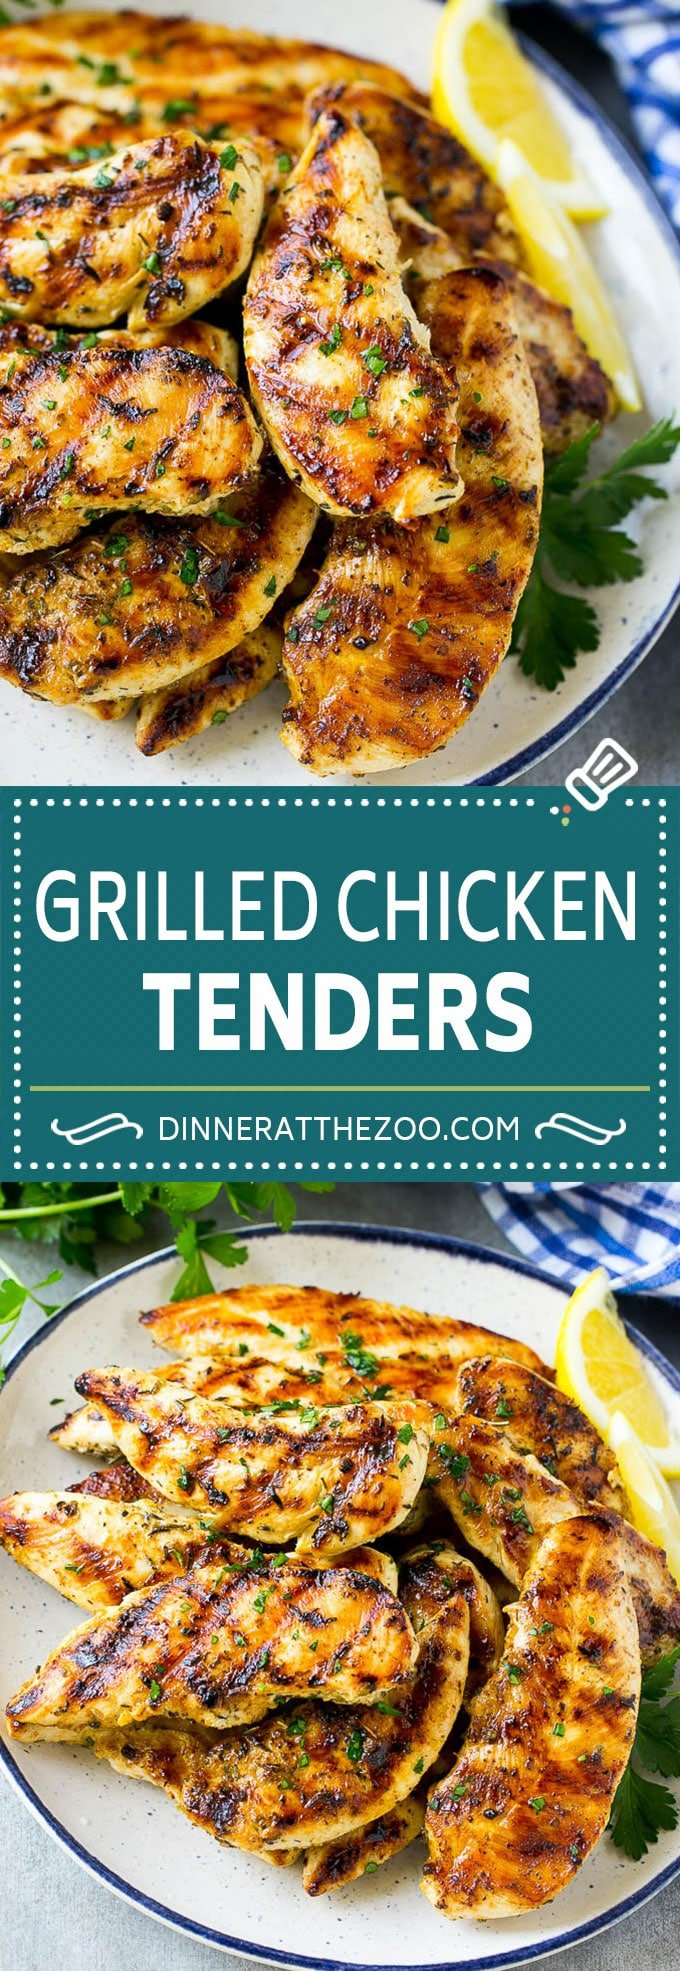 Grilled Chicken Tenders Dinner At The Zoo